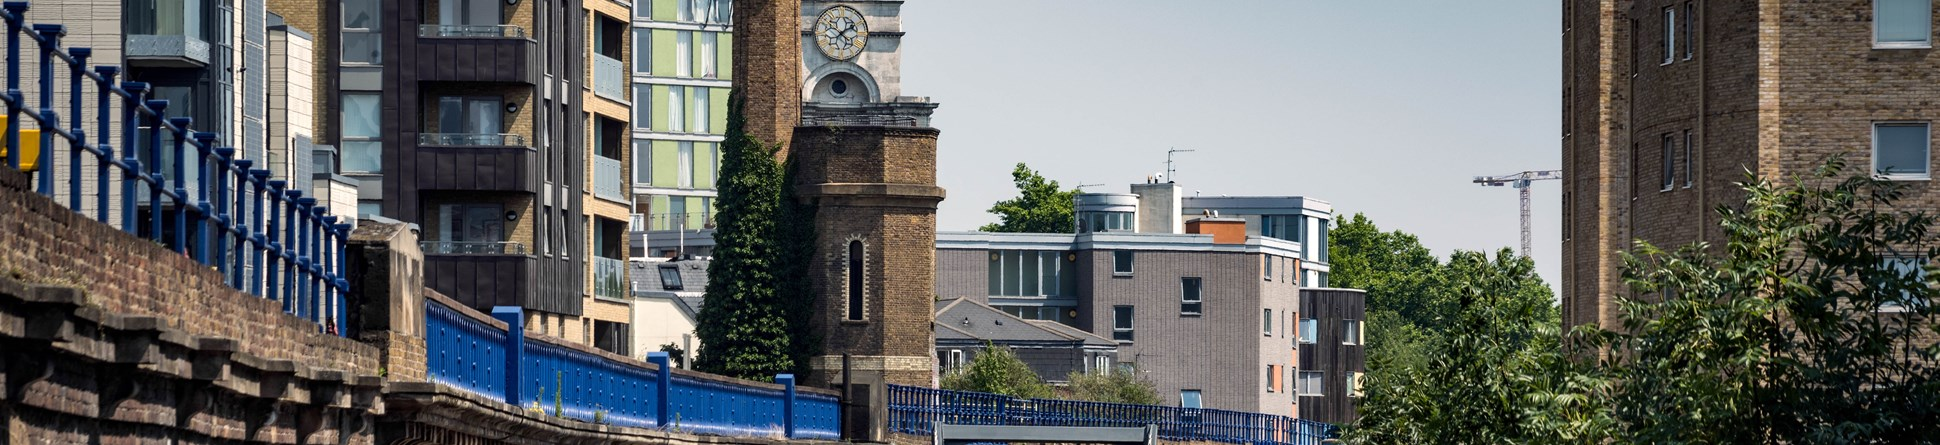 Accumulator Tower and Chimney, Limehouse Basin